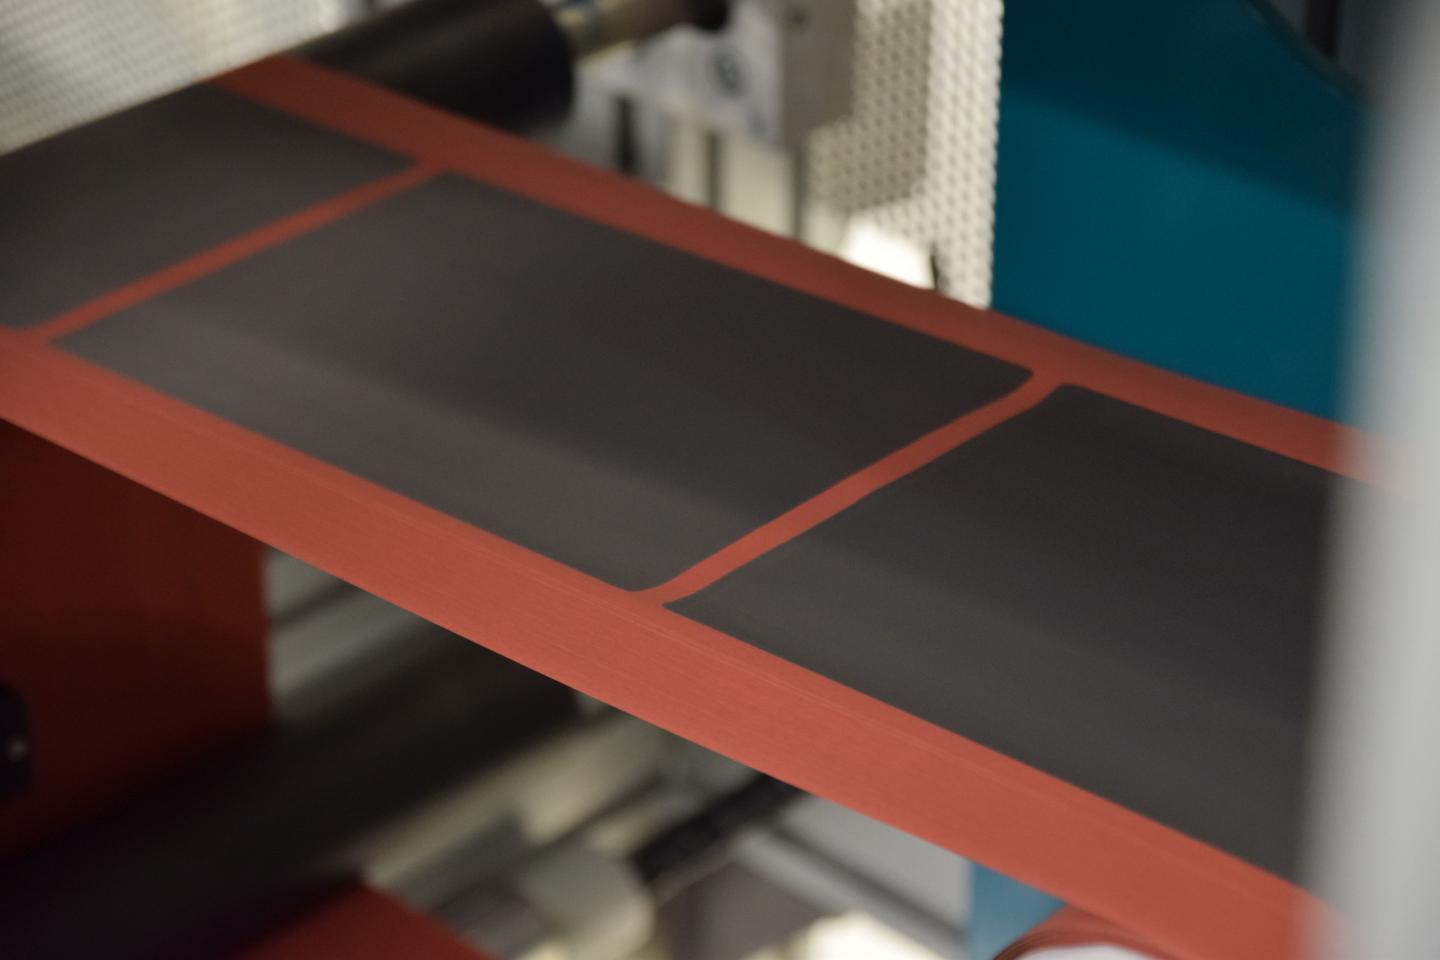 Production of Electrodes for Lithium-Ion Batteries